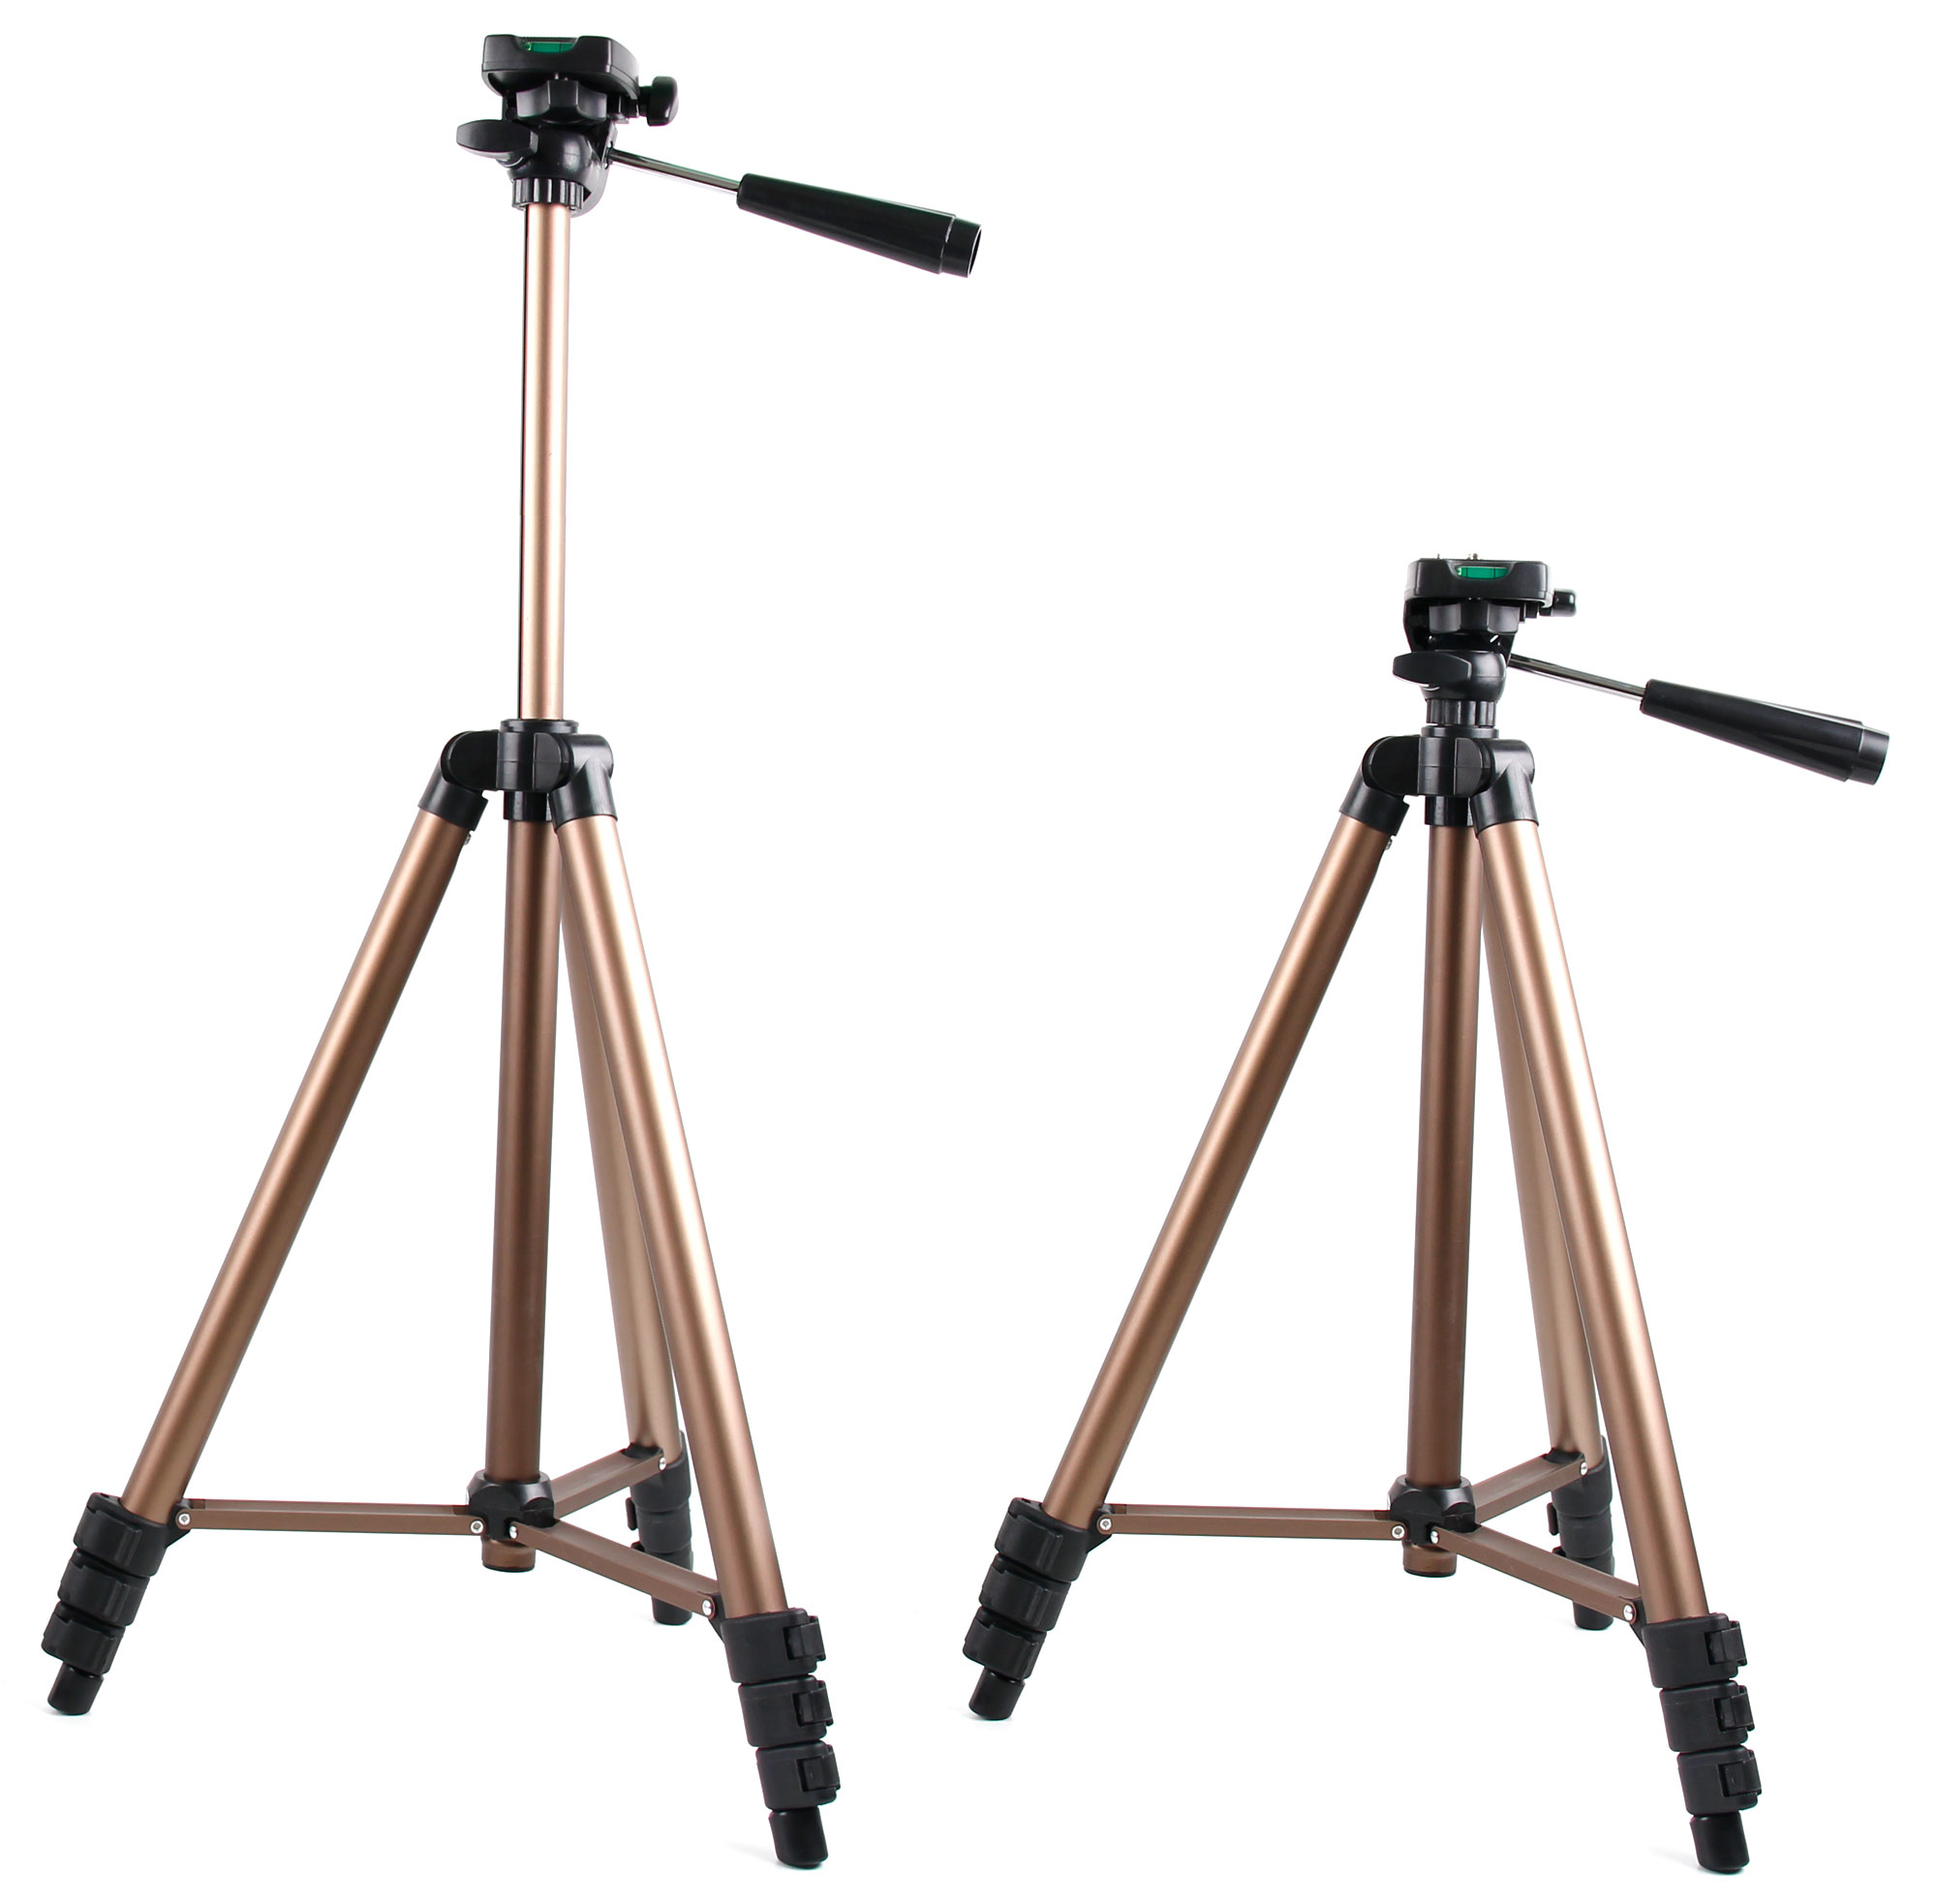 by DURAGADGET Mini Compact Travel Tripod with Flexible Legs for The Olympus OM-D EM10 Lightweight /& Ultra-Portable